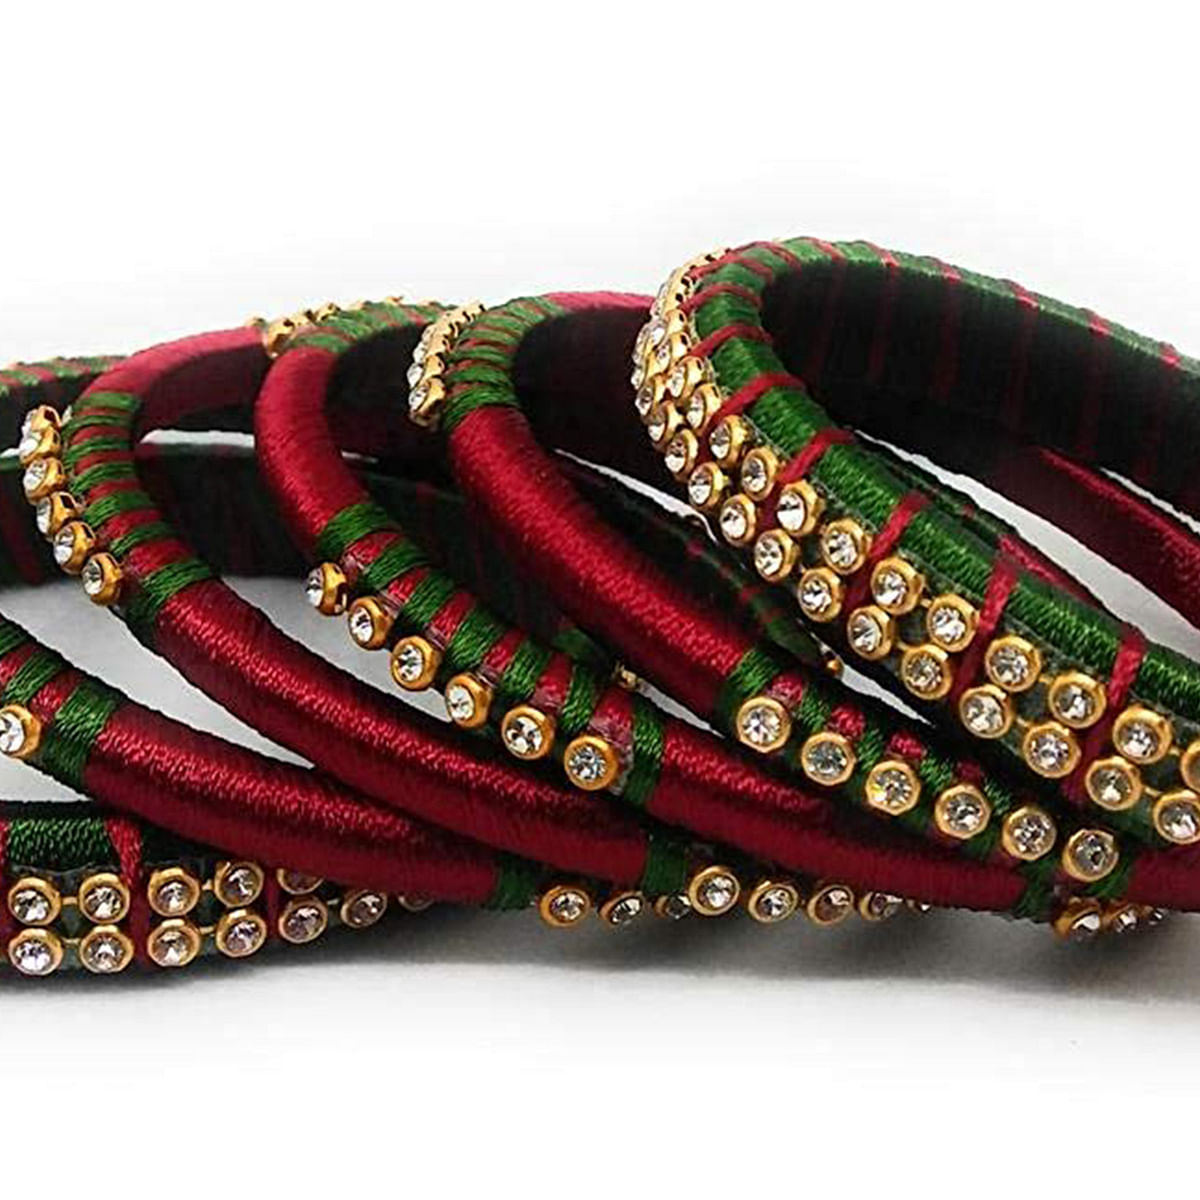 Impressive Maroon & Green Colored Silk Thread & Stone Work Bangles - Set Of 6